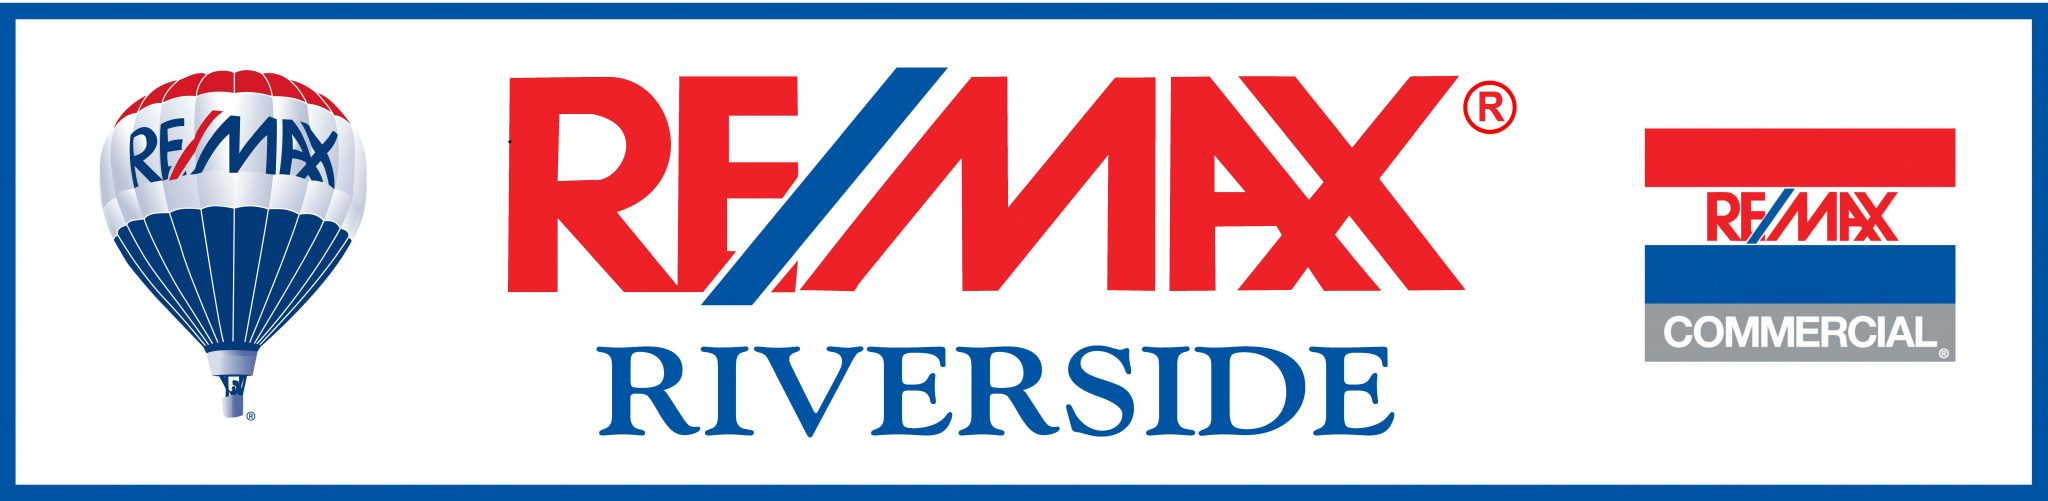 RE/MAX Riverside Commercial Division